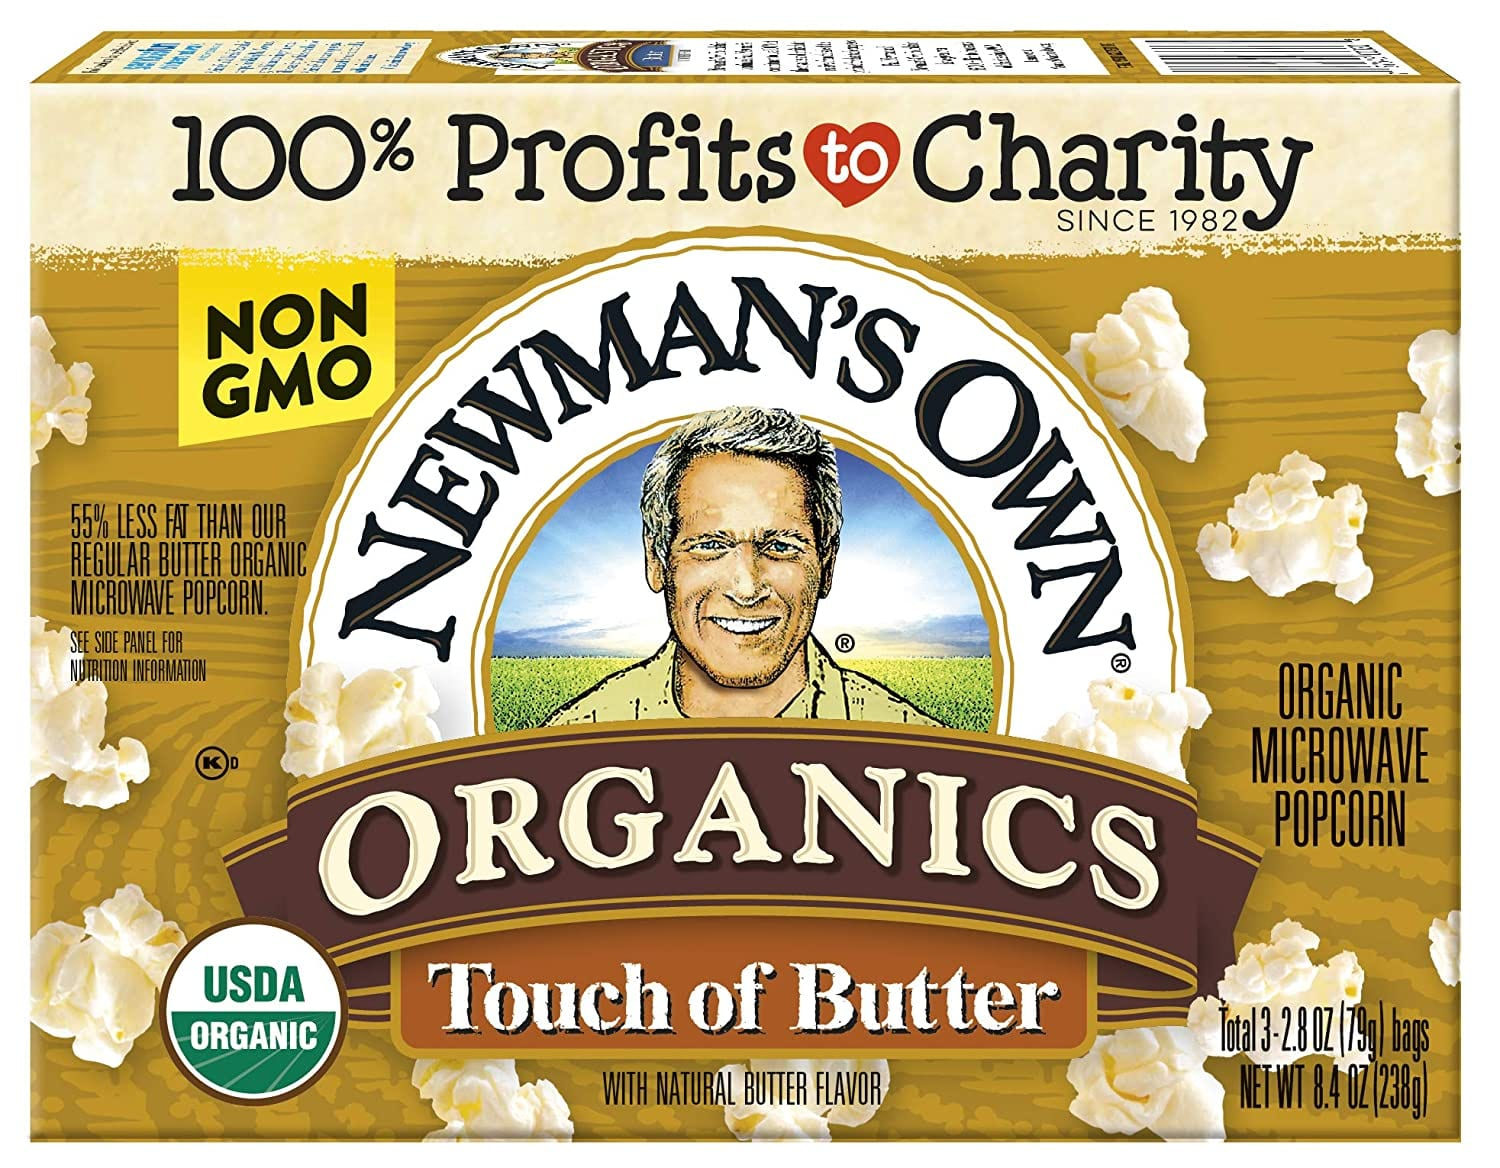 12-Pack 8.4-Oz Newman's Own Organics Microwave Popcorn (Touch of Butter) $12.10 w/ S&S + Free Shipping w/ Prime or on orders over $25